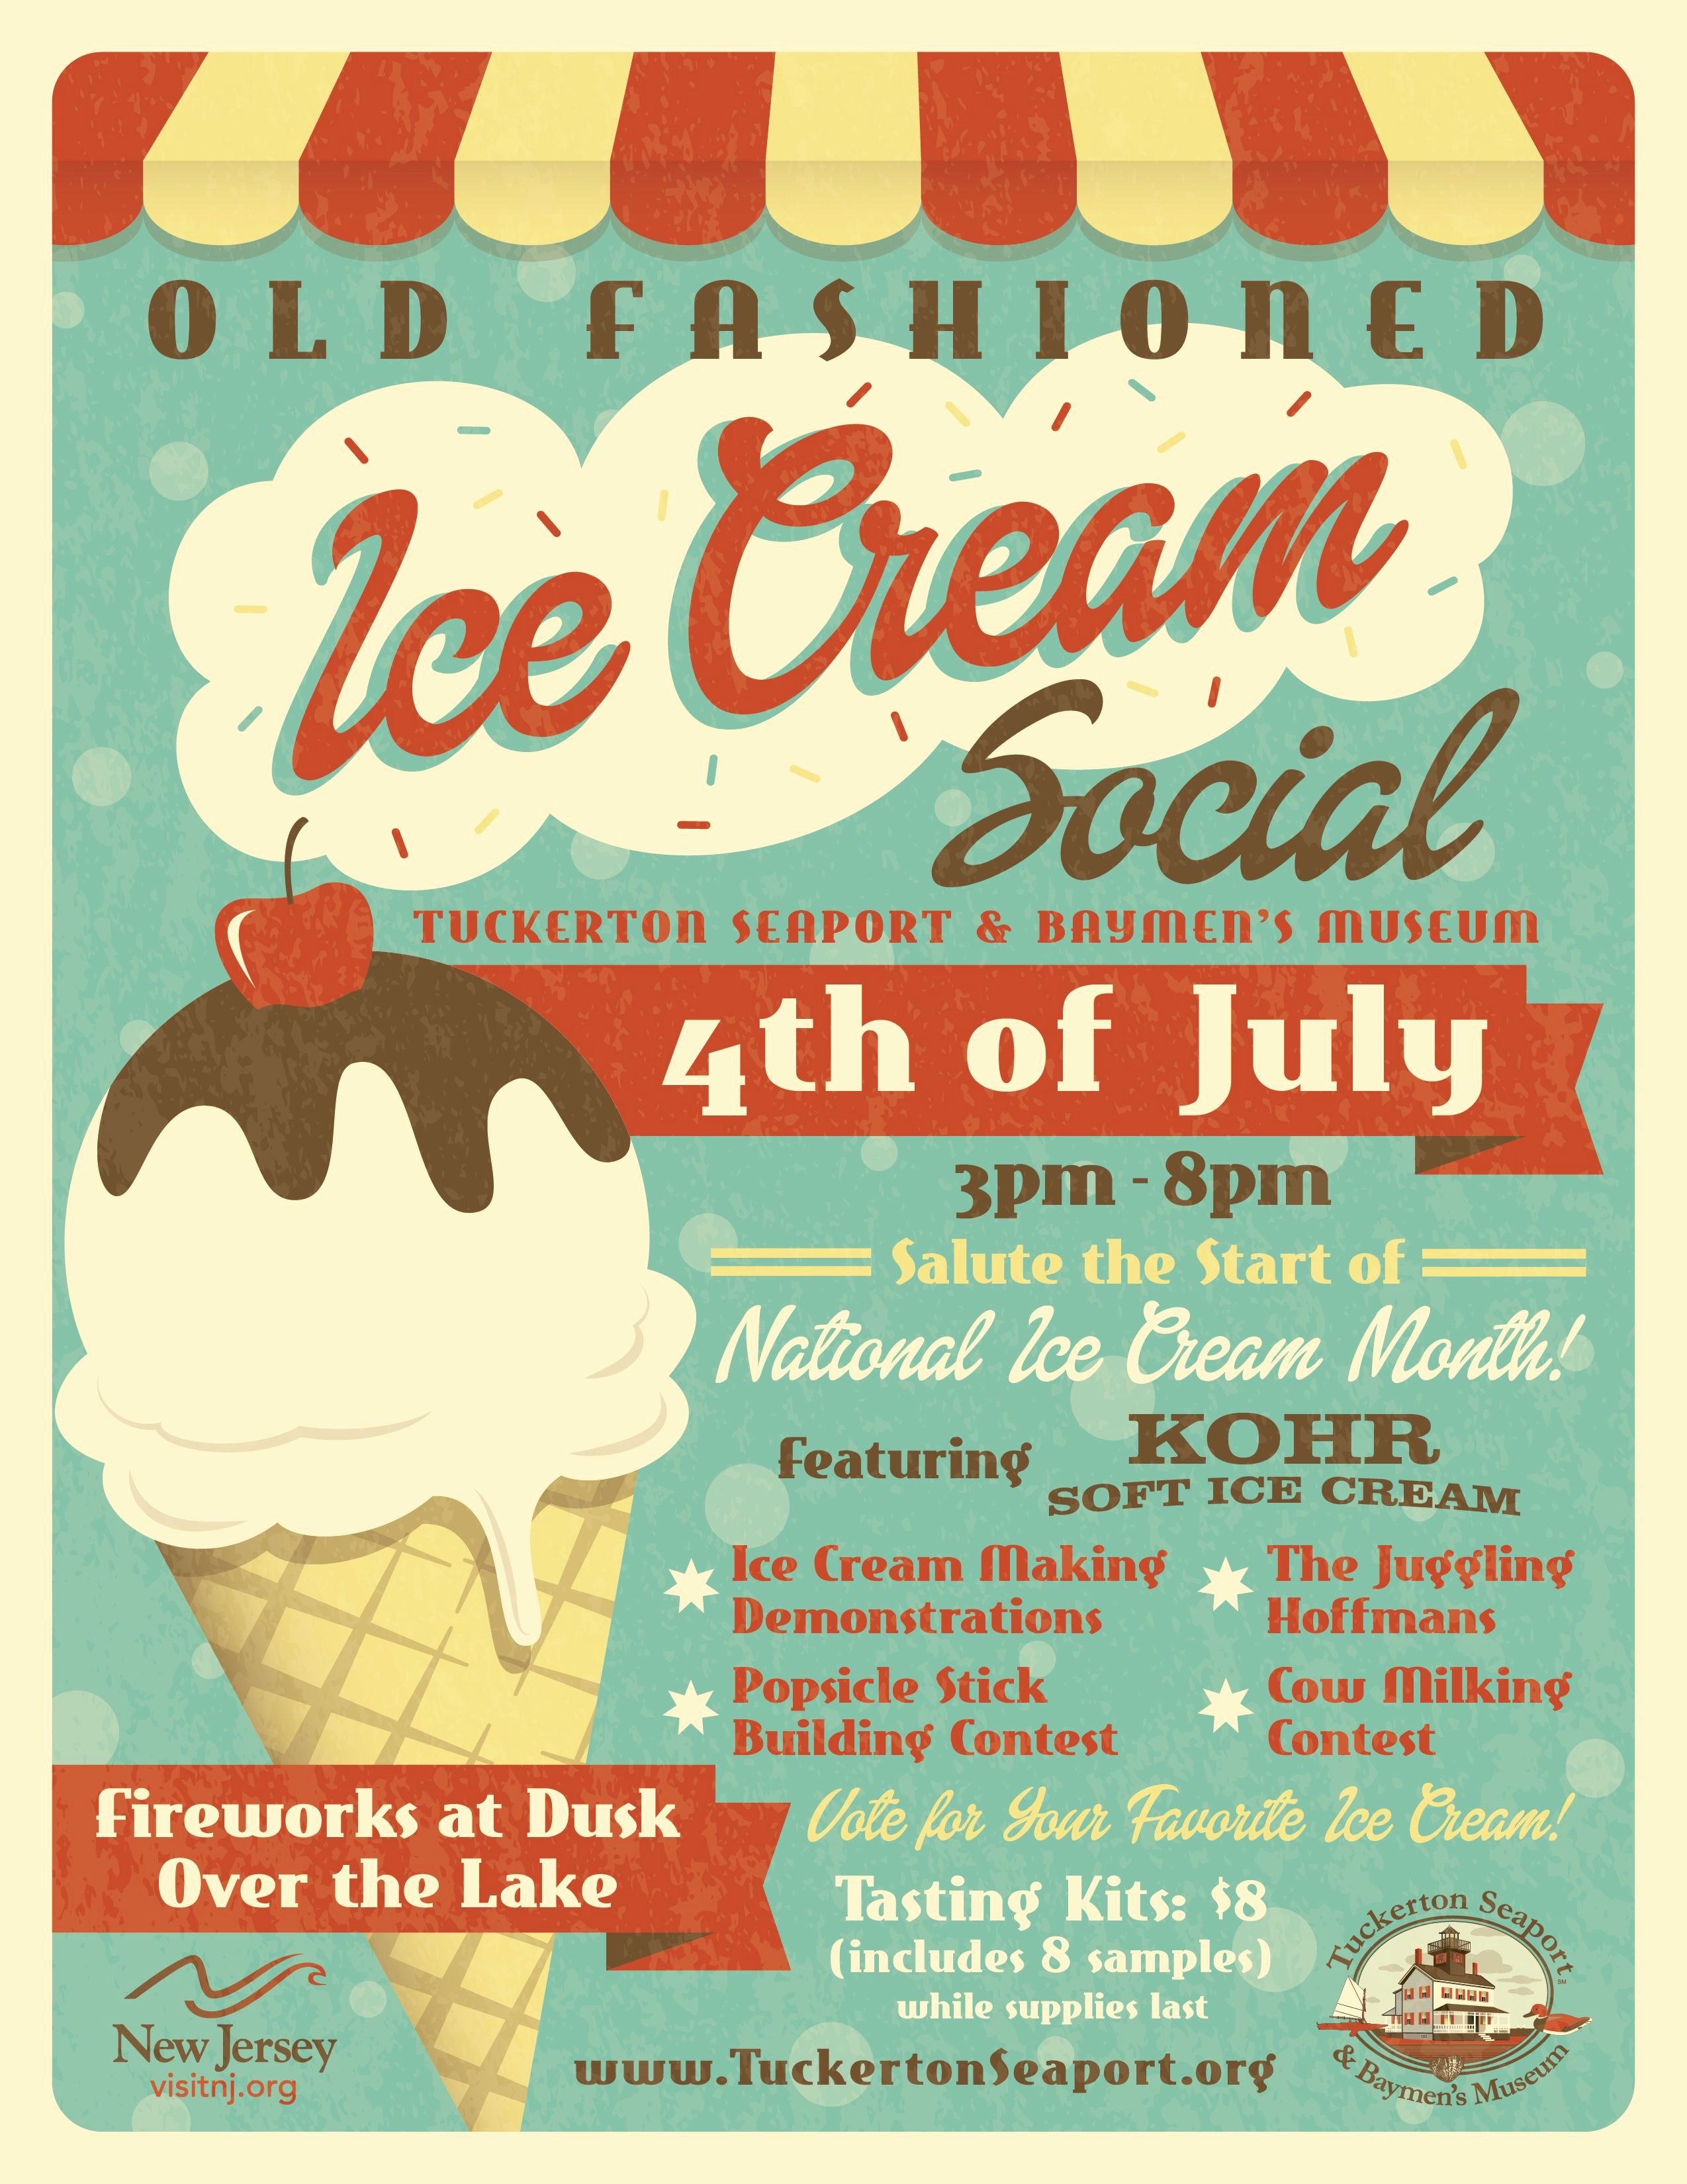 Ice Cream social Flyer Template Lovely Designs Flyers Ice Cream Shop Google Search